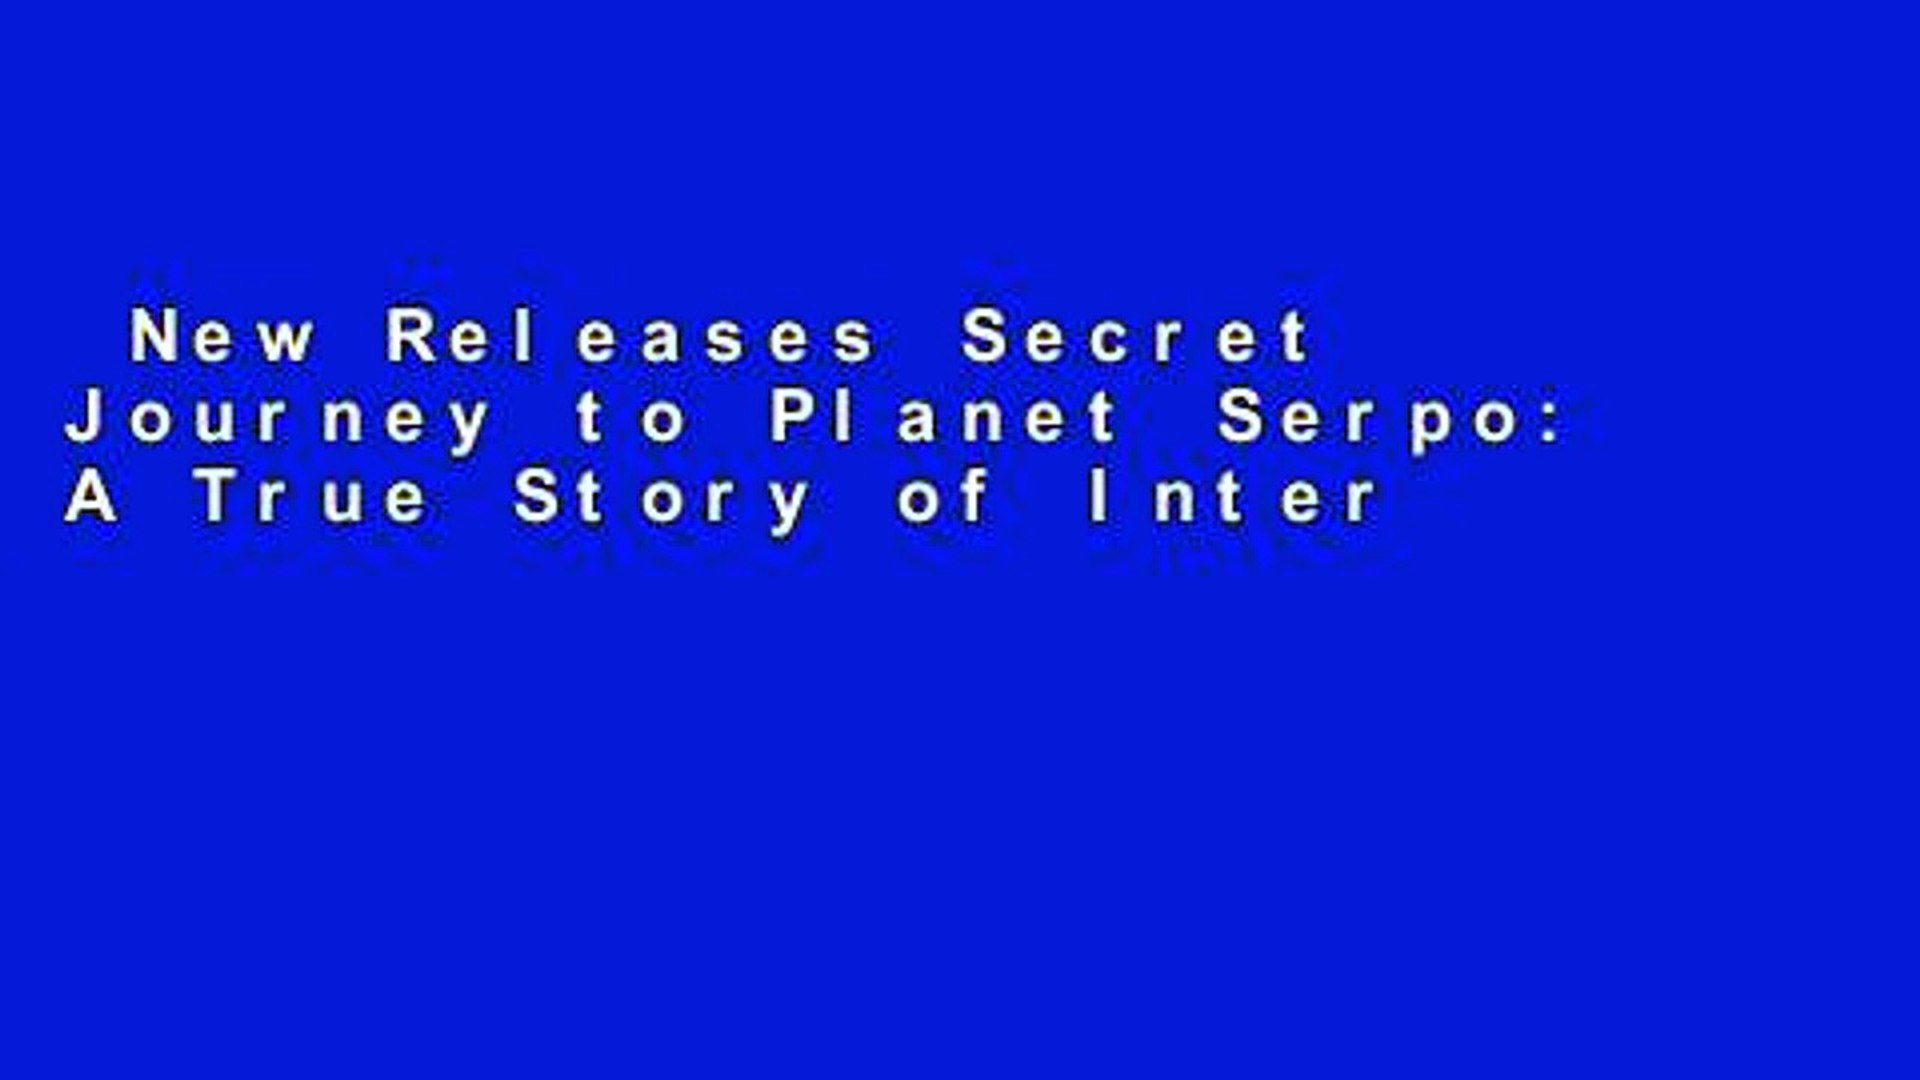 New Releases Secret Journey to Planet Serpo: A True Story of Interplanetary  Travel Review